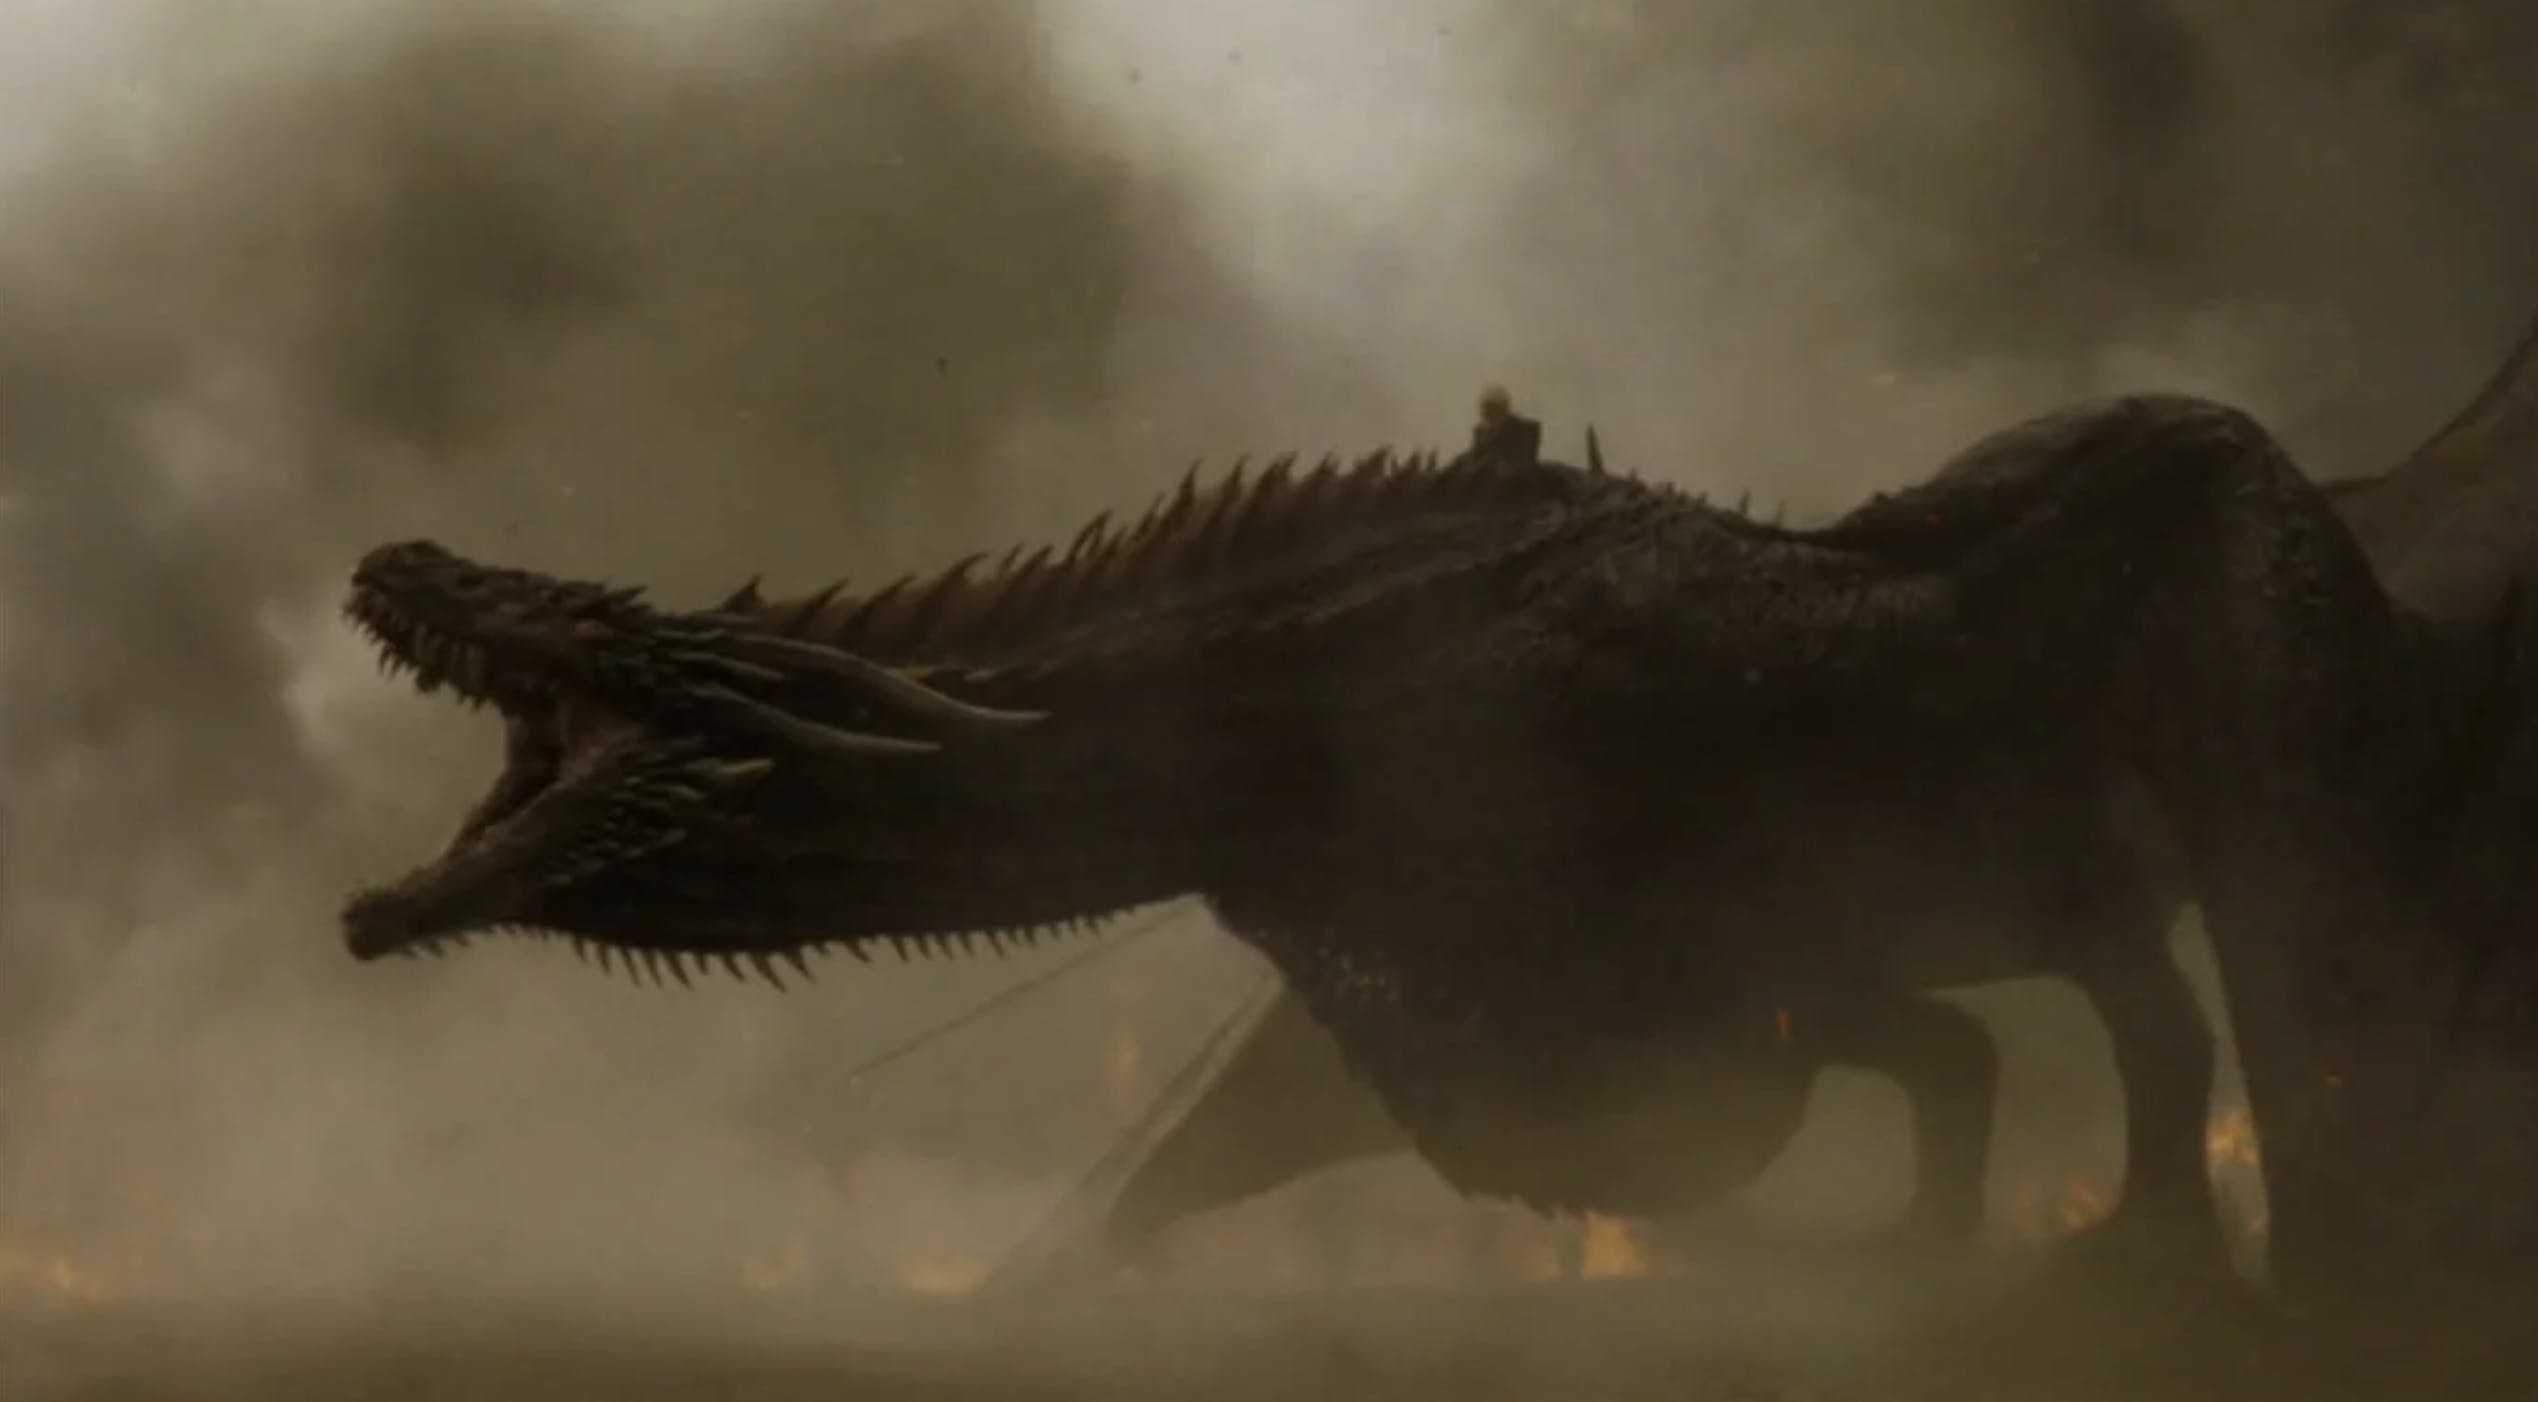 Image showing a dragon with its jaw open wide